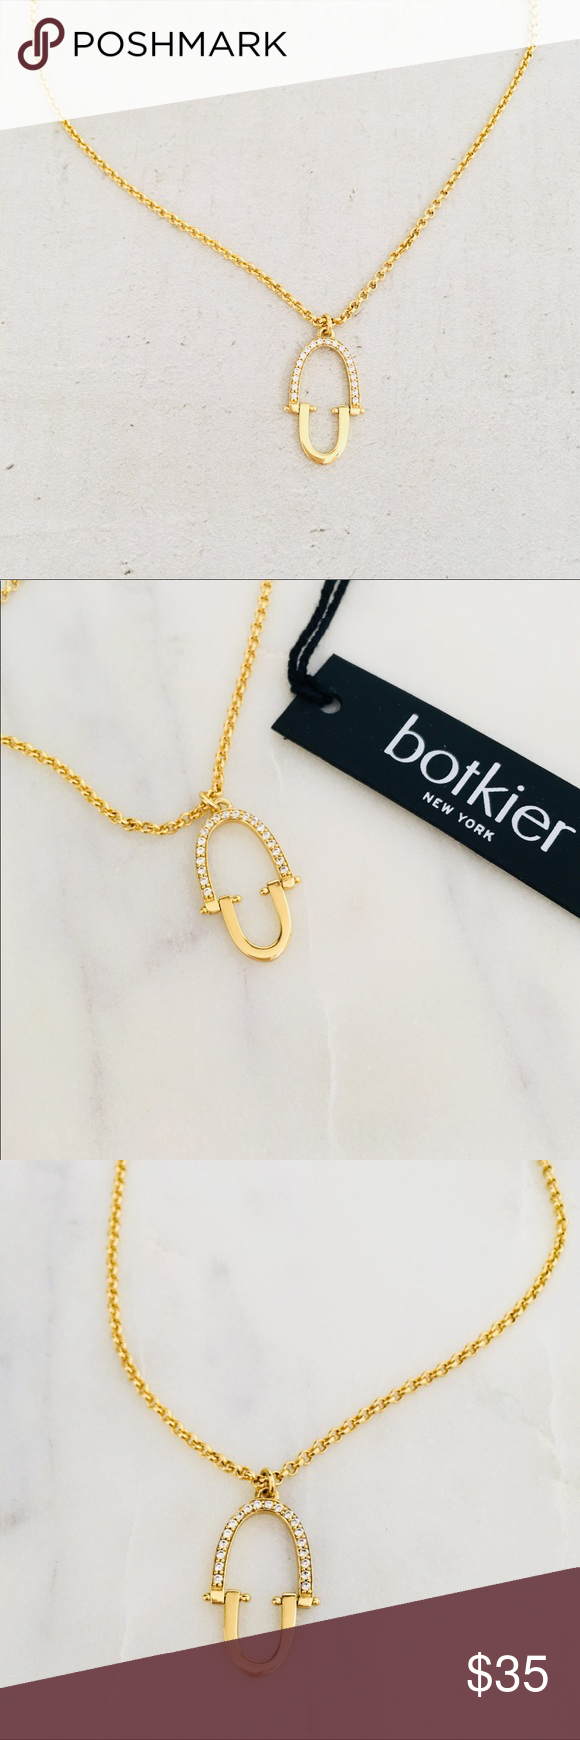 Botkier glass oval pendant necklace oval pendant round glass and